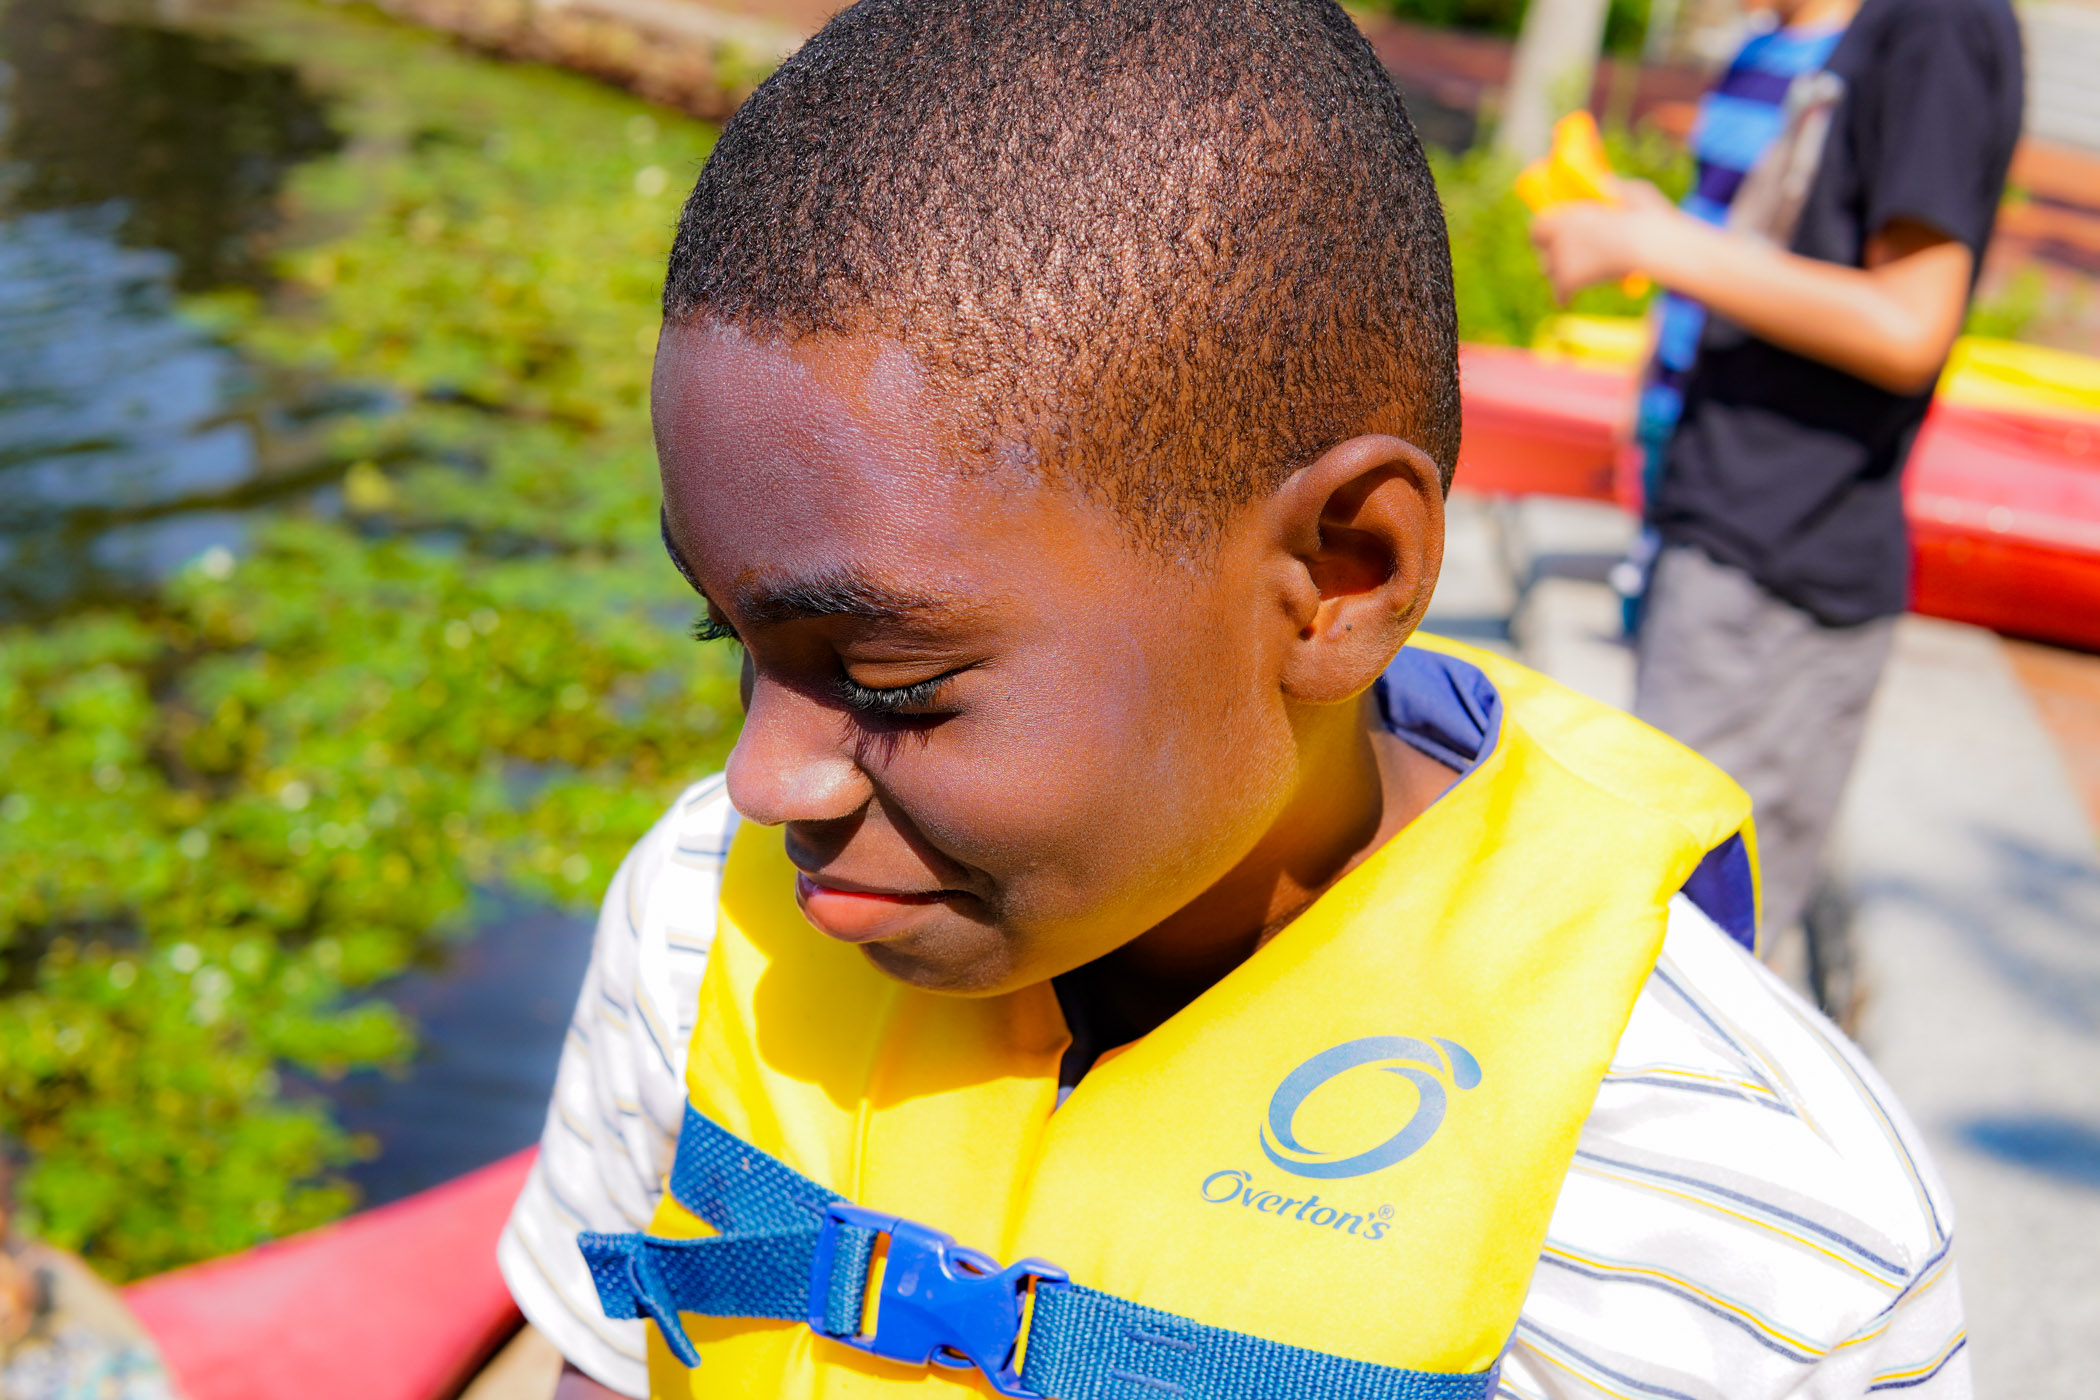 A student is eager to get started in kayaking on the pond